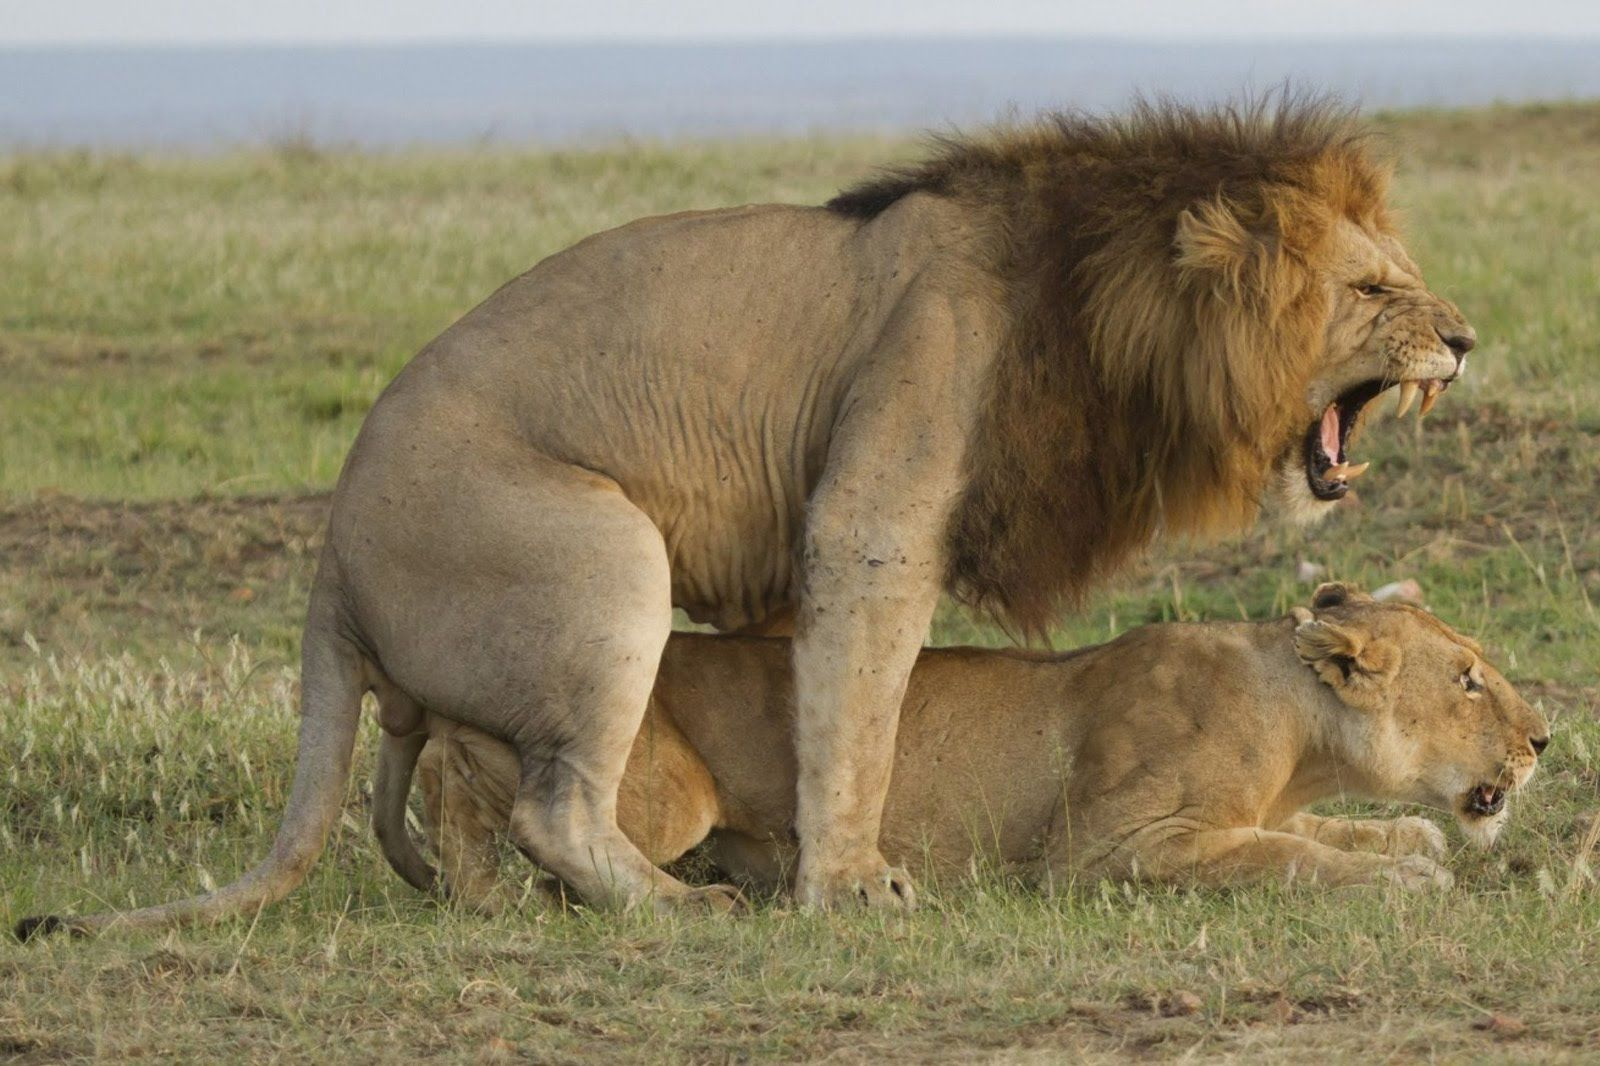 Animals mating at the zoo wild animals lions mating